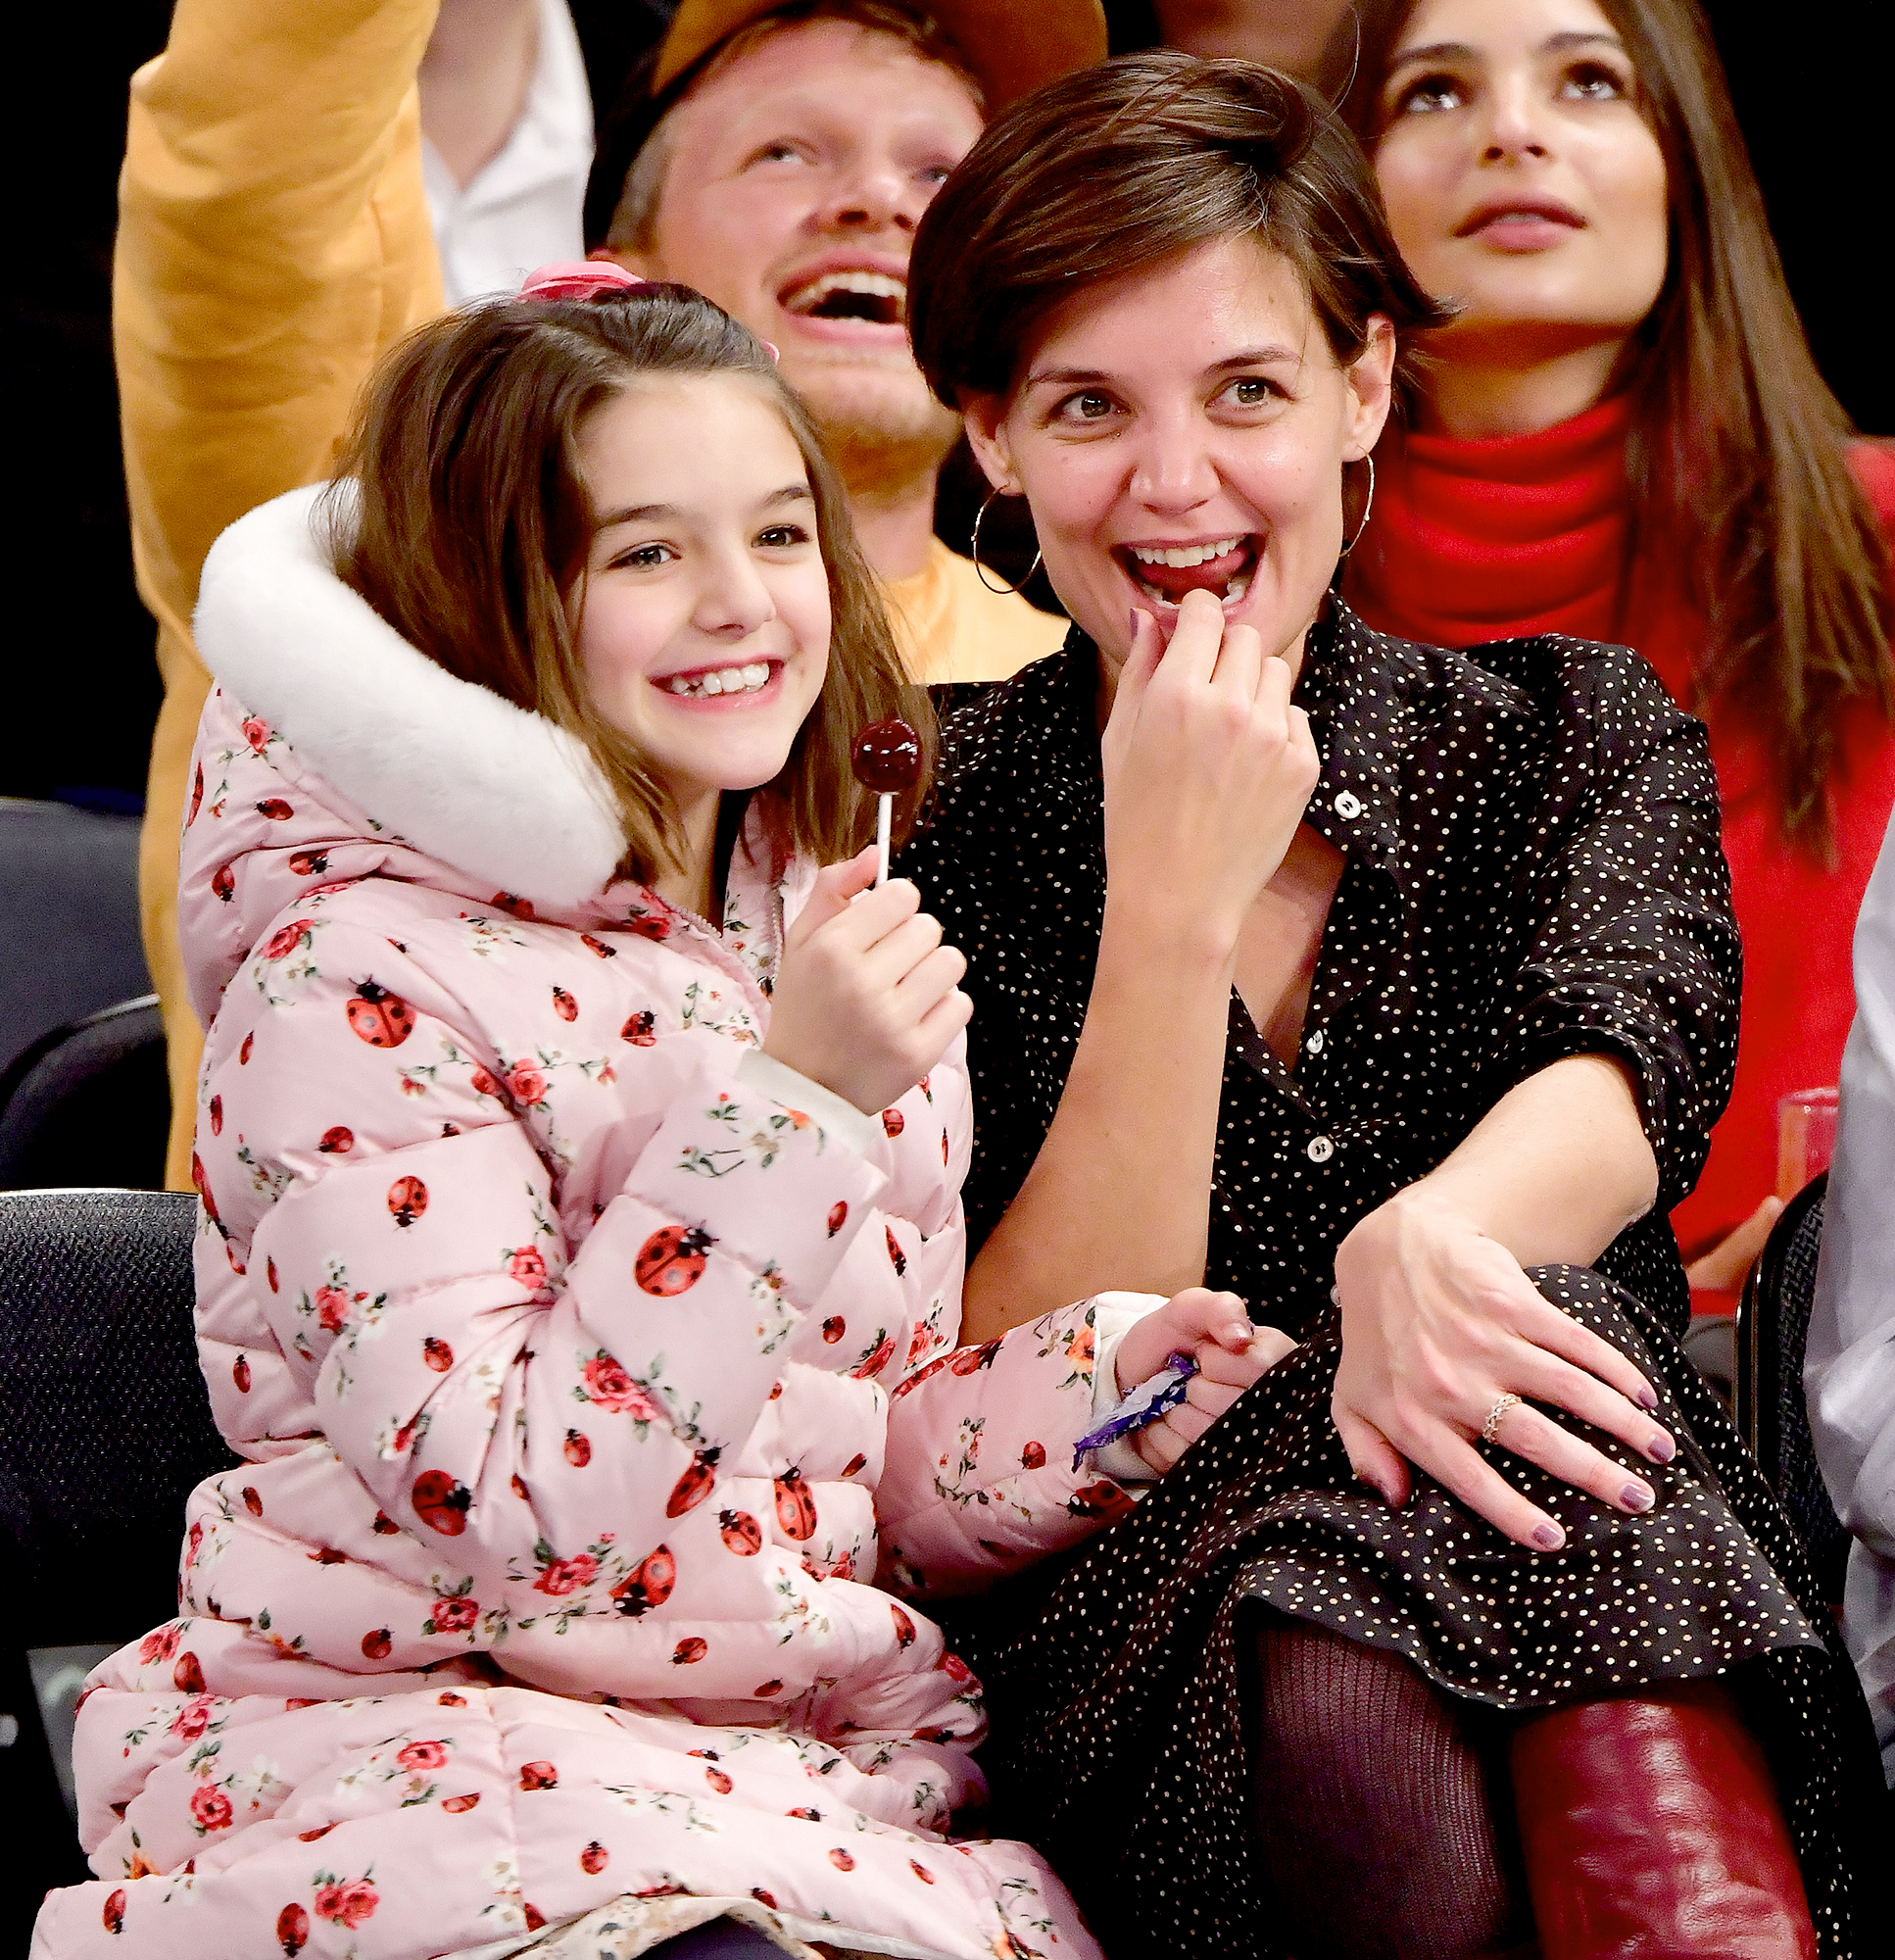 suri-cruise-katie-holmes-lollipop - The mother-daughter pair attended the Oklahoma City Thunder vs New York Knicks game at Madison Square Garden in December 2017 in New York City.